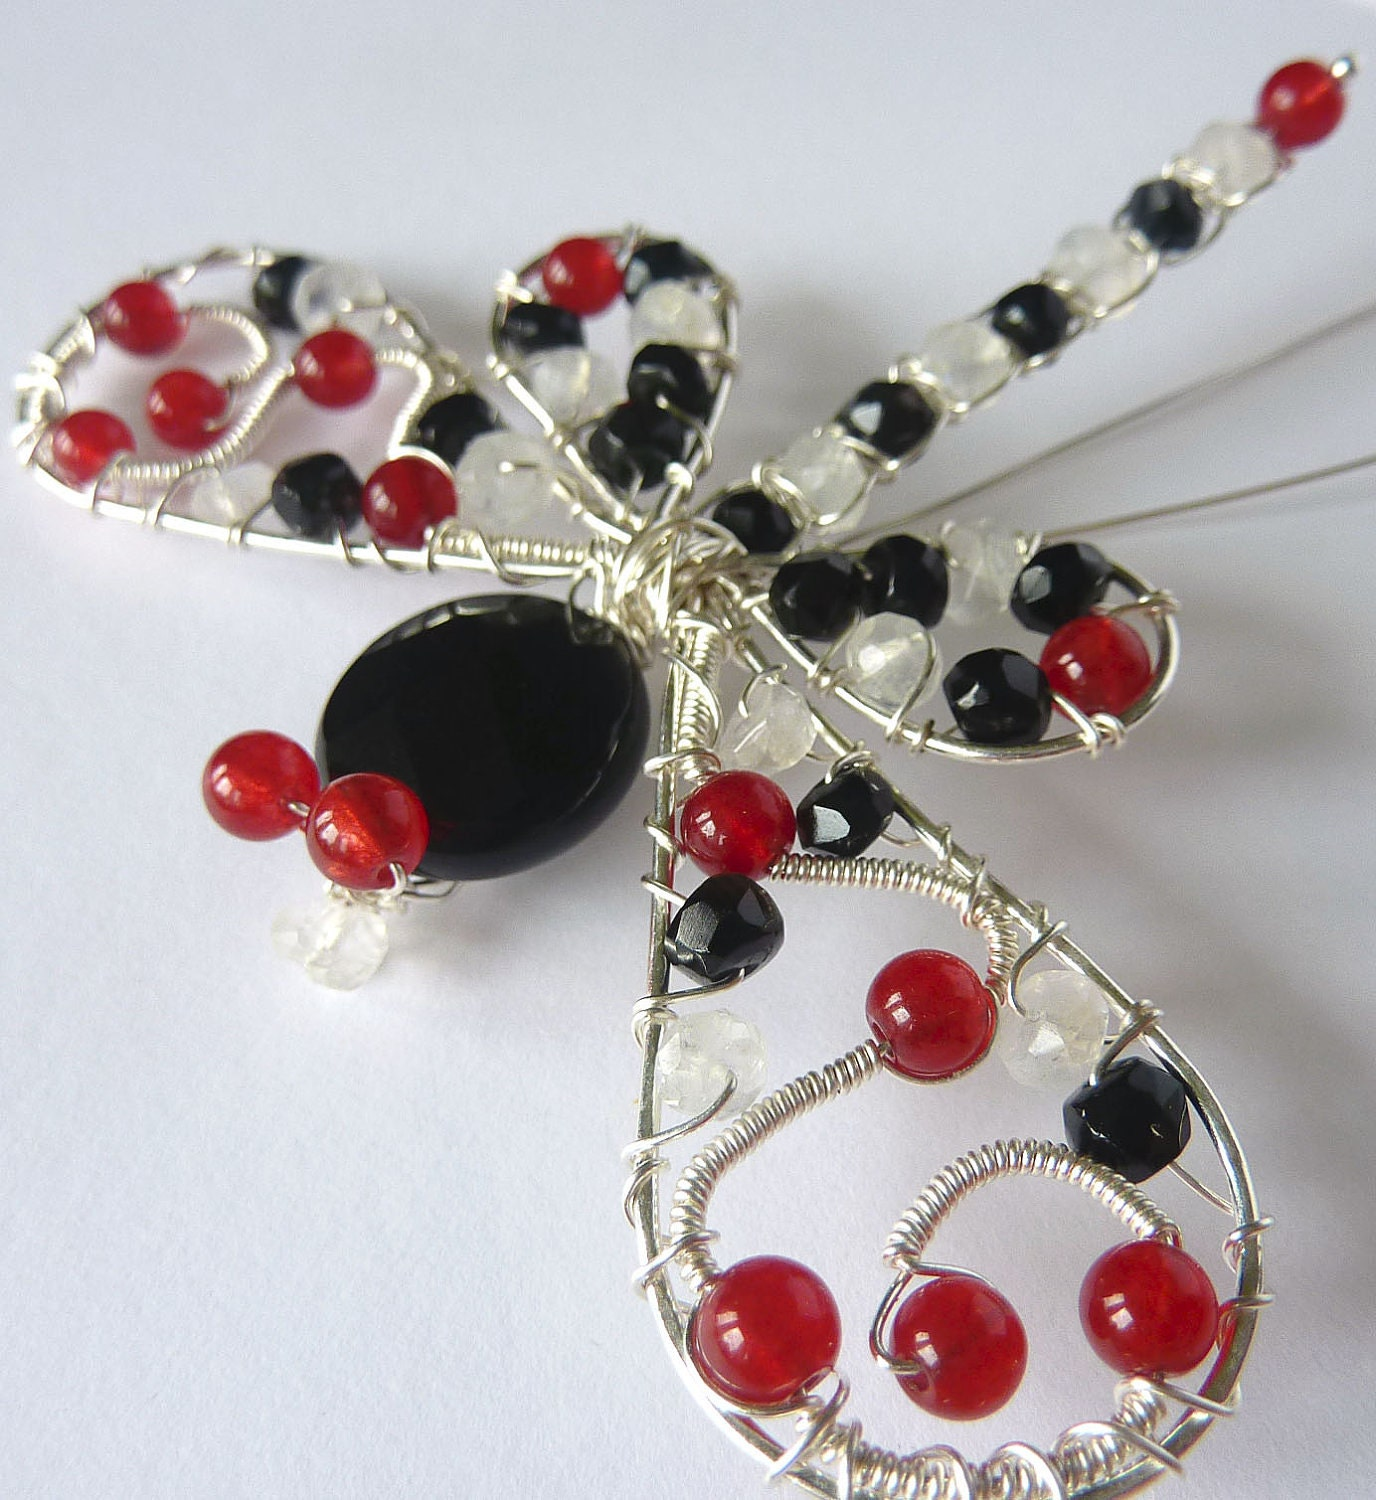 123 SALE - Black Onyx and Red Agate large ornate Sterling Dragonfly Hair Pin, Clip, Brooch or Bouquet Decoration